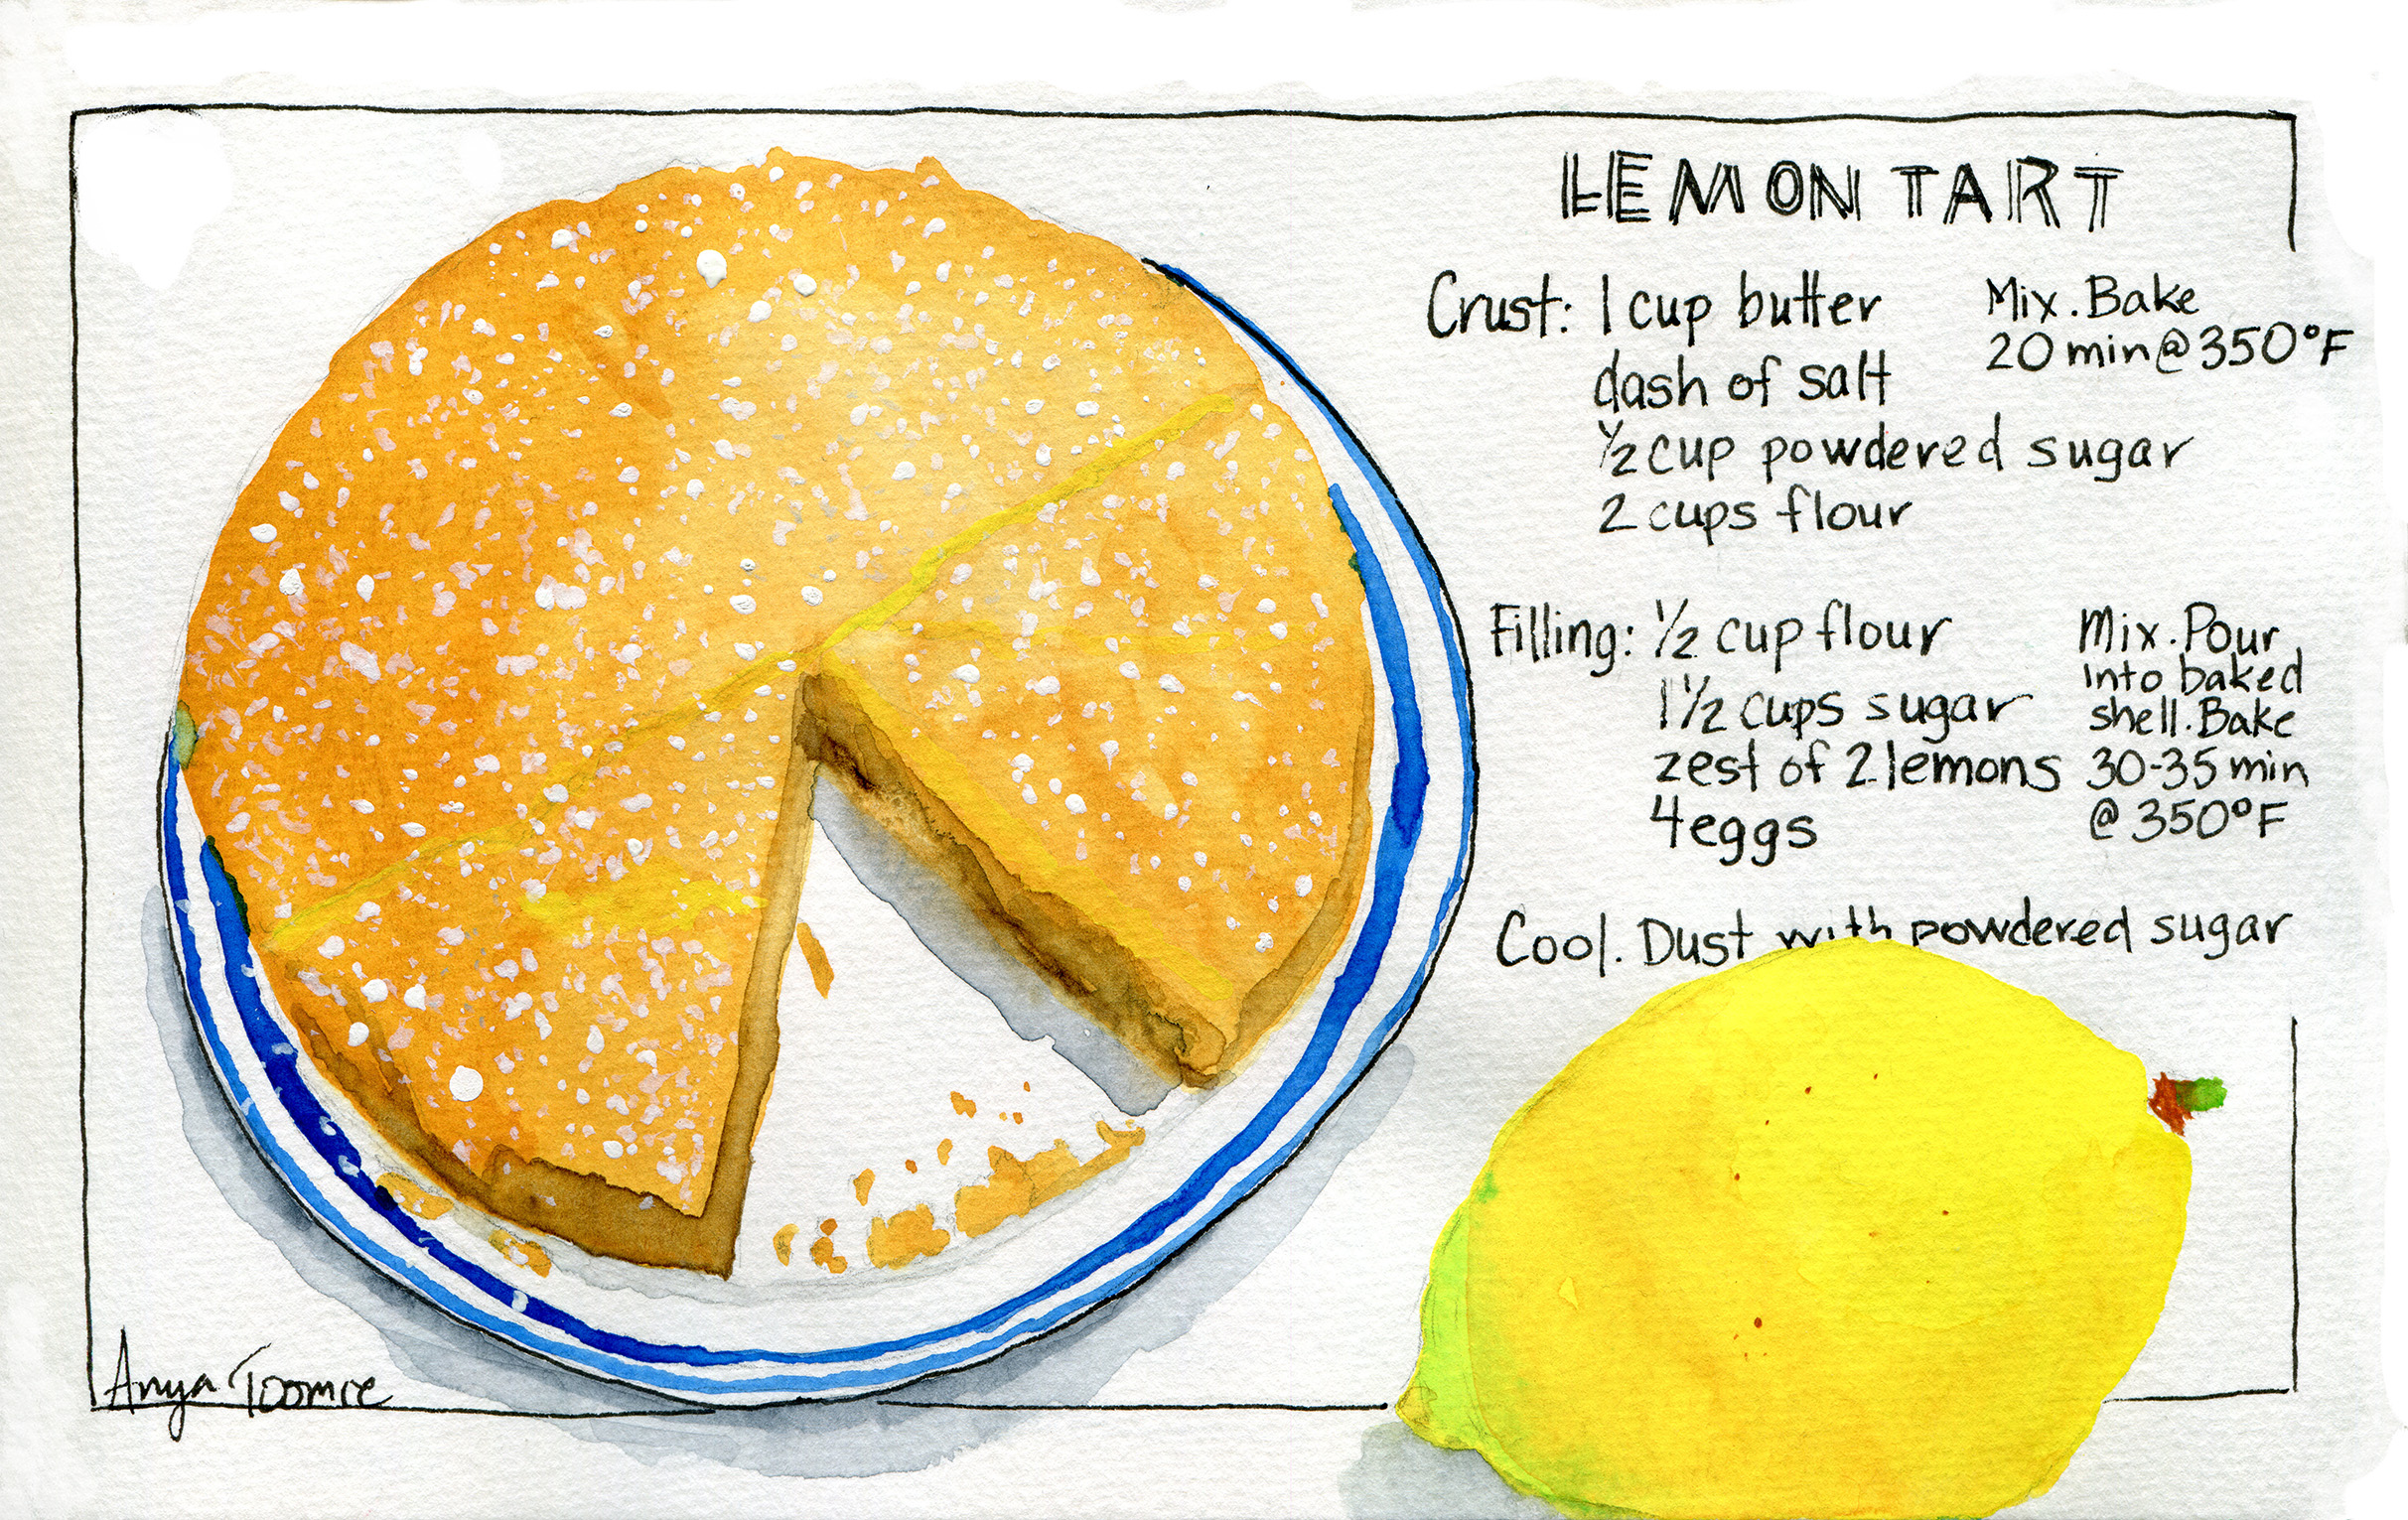 AT Lemon Tart wo EDM 300dpi.jpg